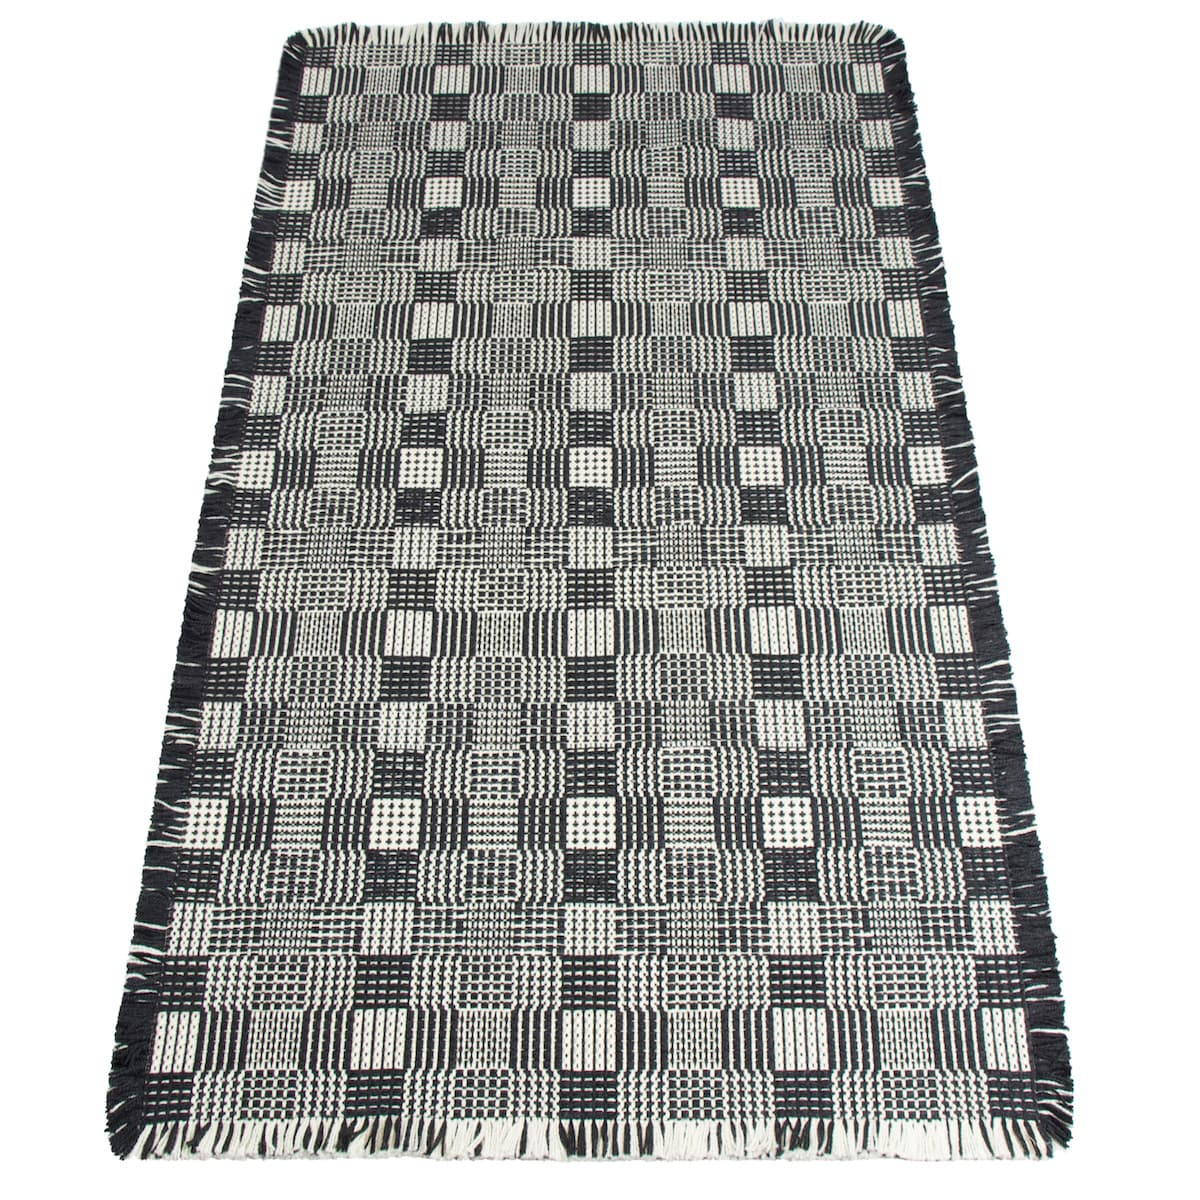 Chequered Black Rug by Roger Oates for AUTHOR's collection of British-made homeware